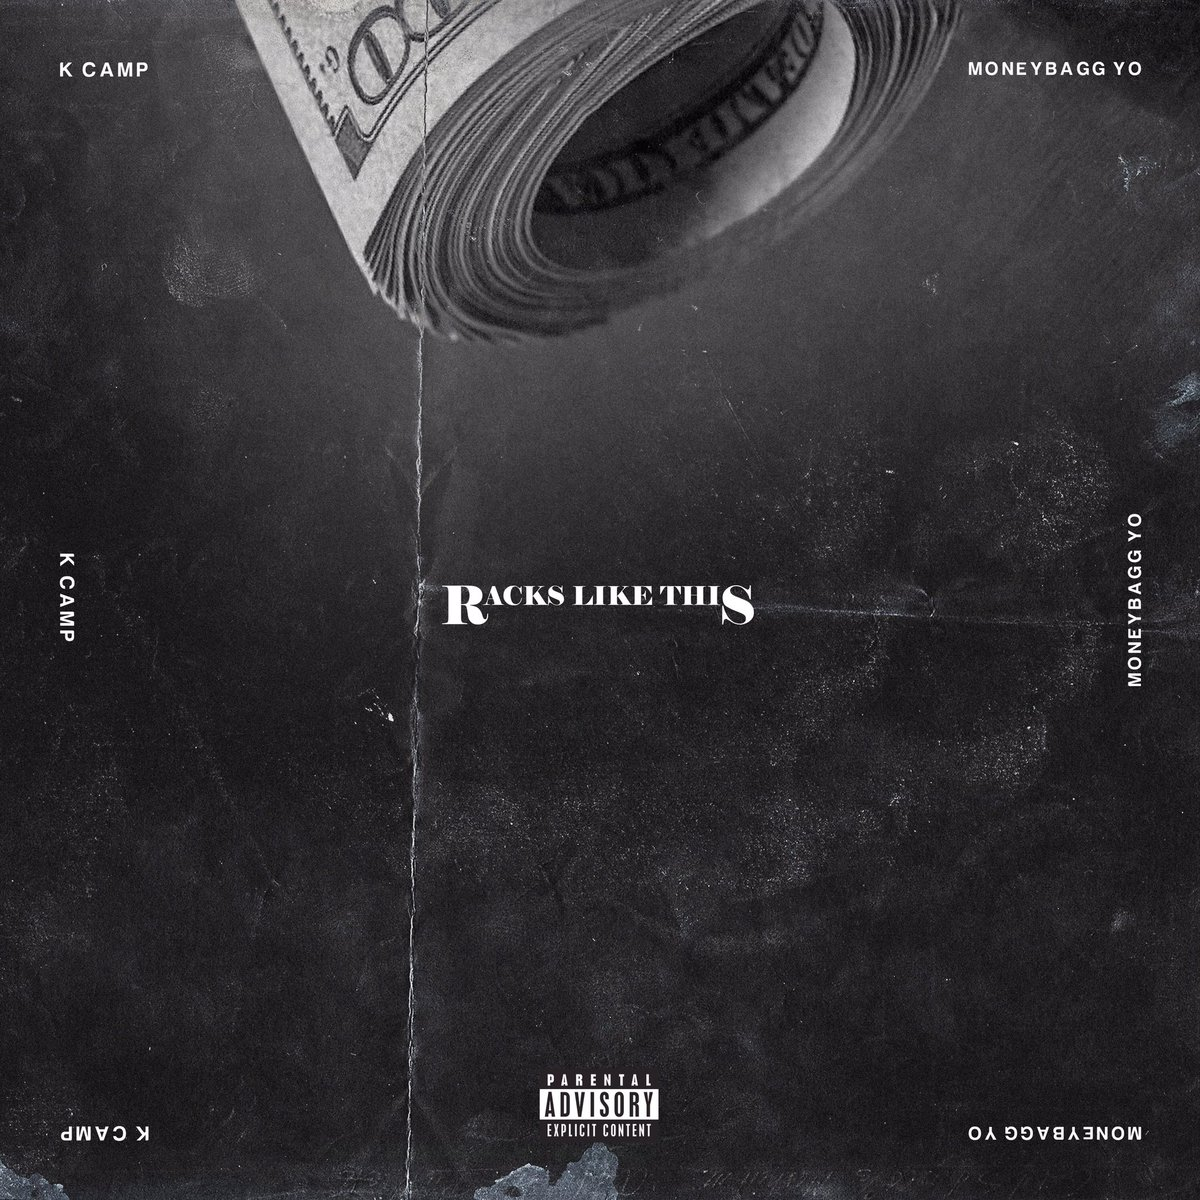 RT @kcamp: RACKS LIKE THIS ft @MoneyBaggYo  dropping this Friday 3/23/18 ???? https://t.co/Waylx8UjaY